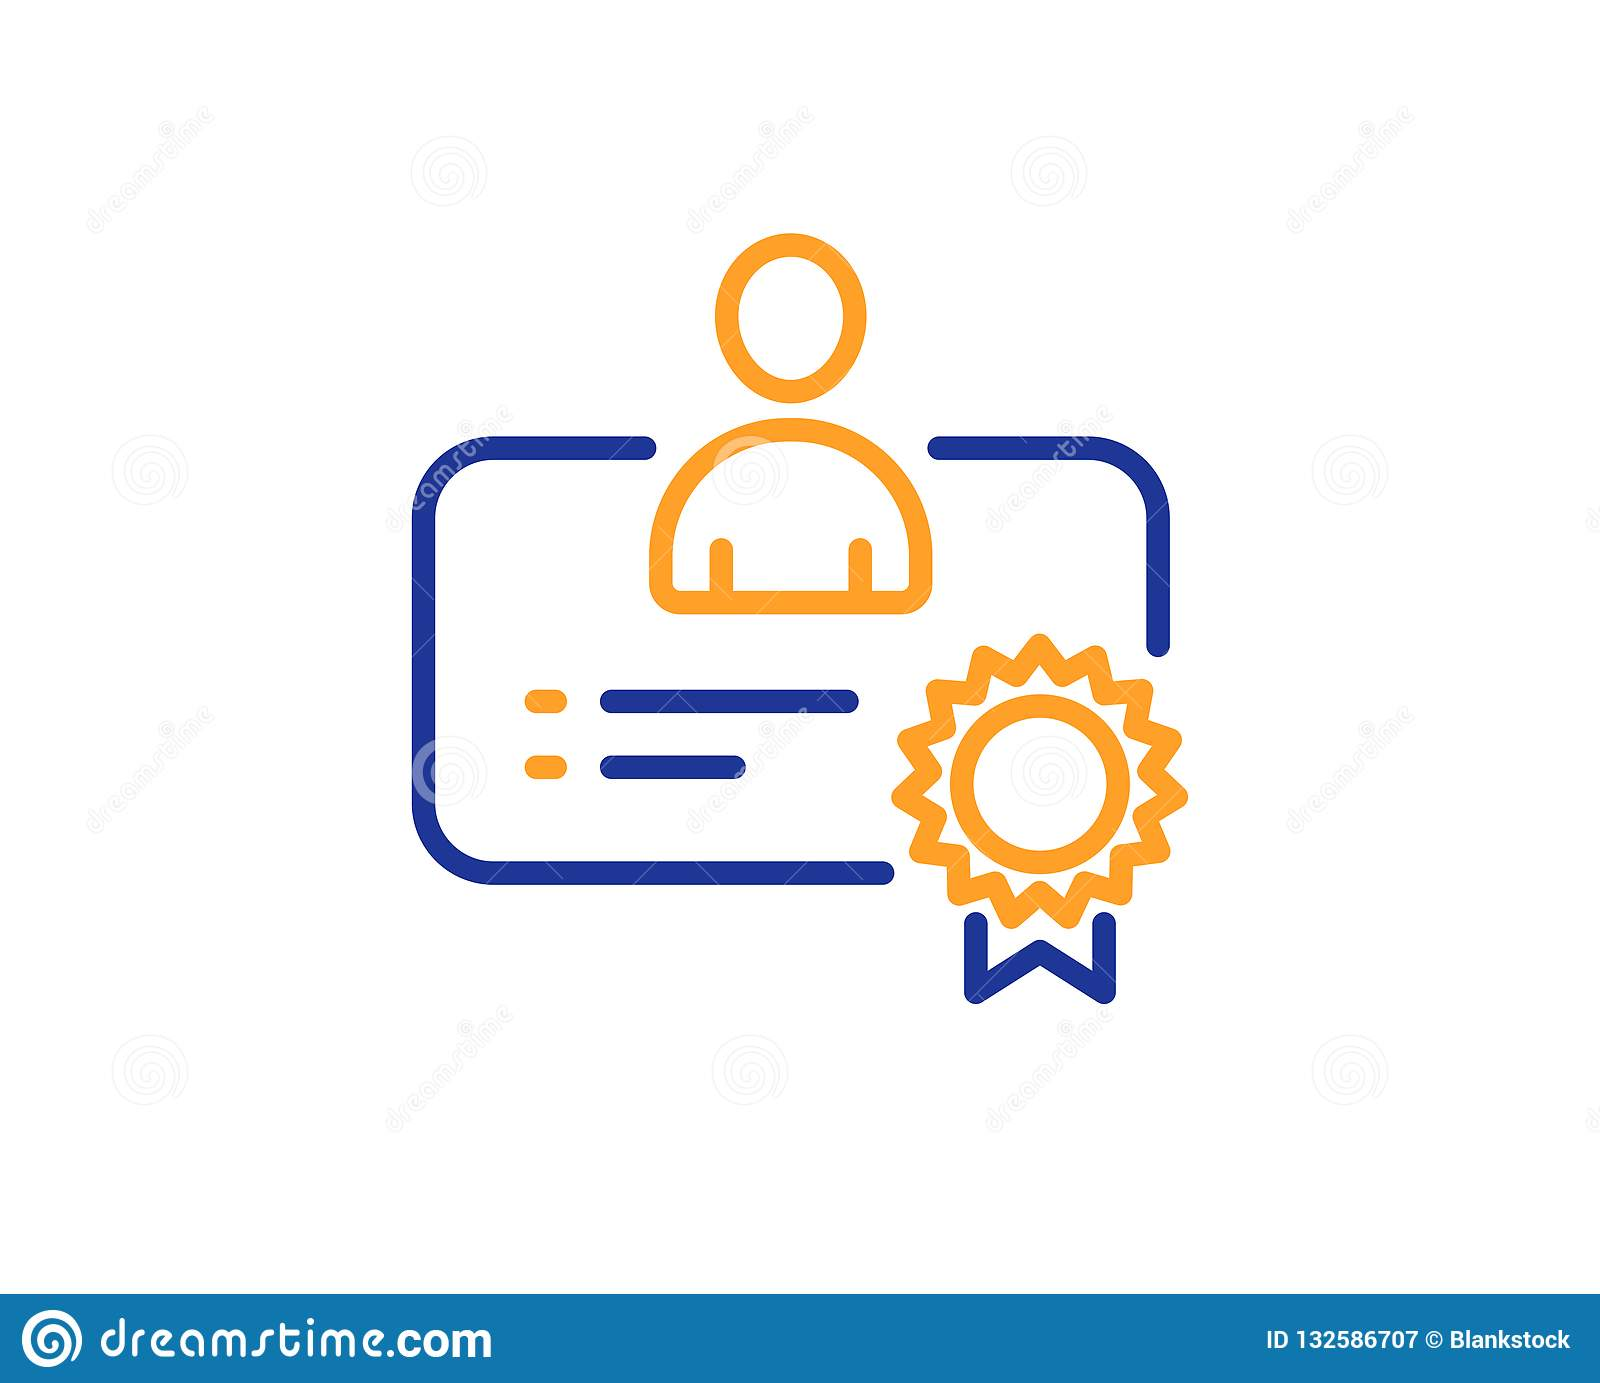 Certificate Line Icon Business Management Sign Vector Stock Vector